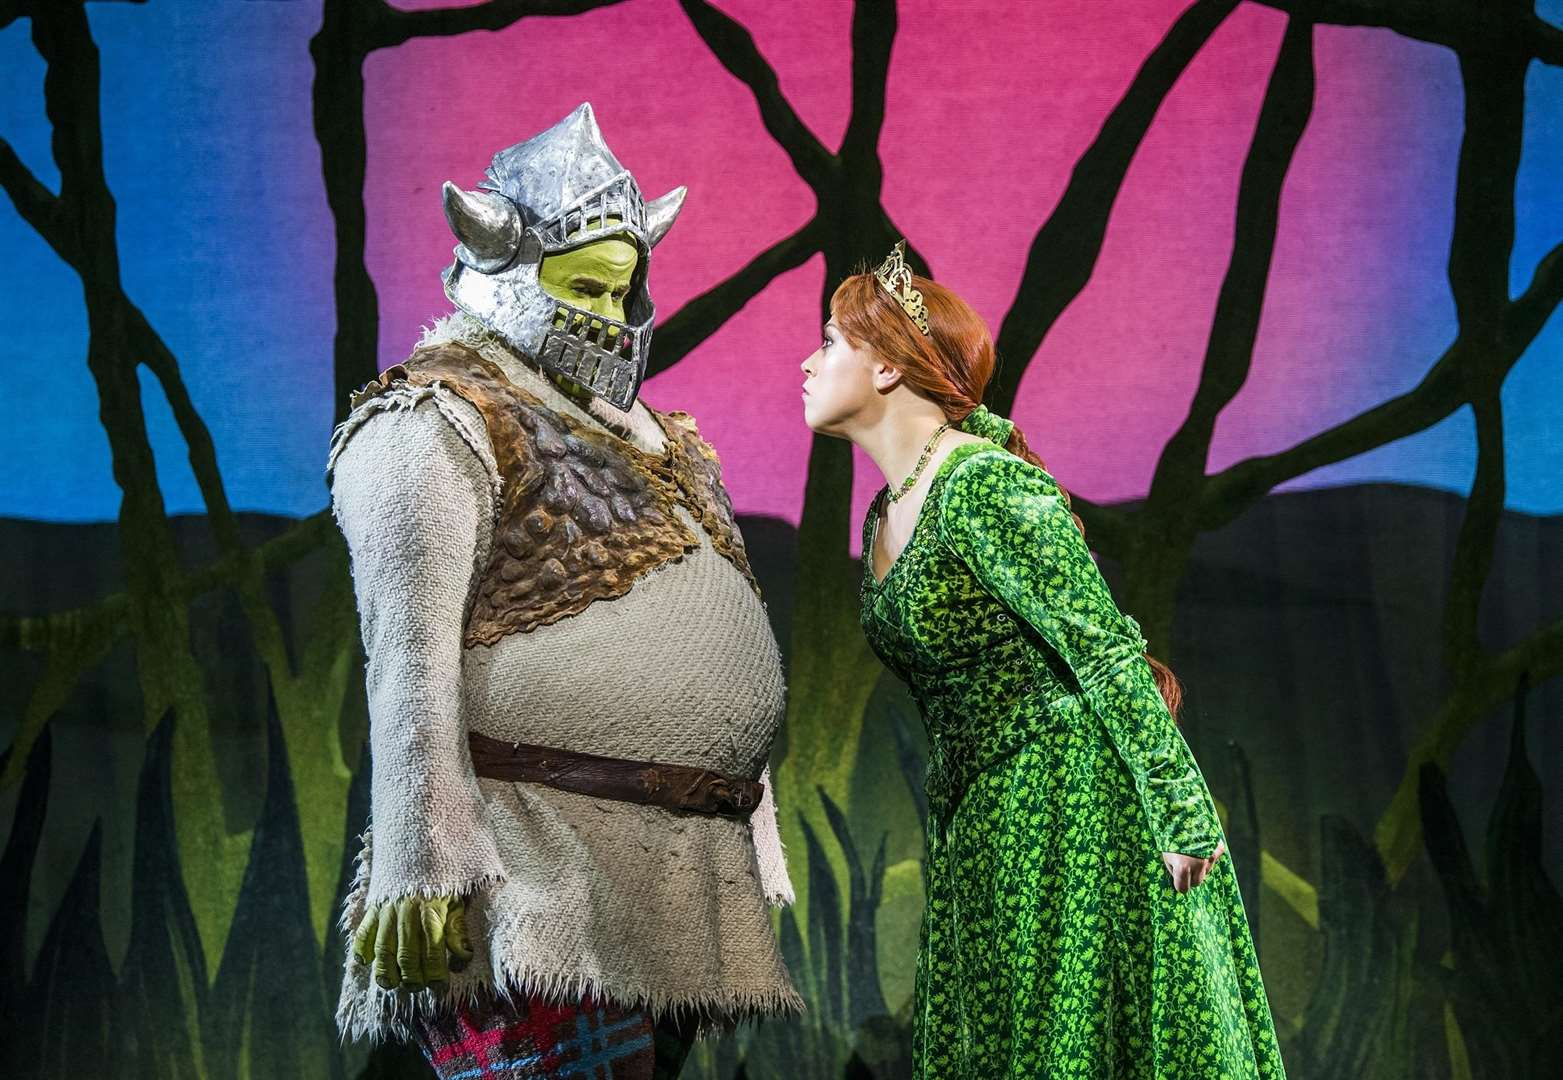 Review: Shrek! the Musical comes to the Marlowe Theatre